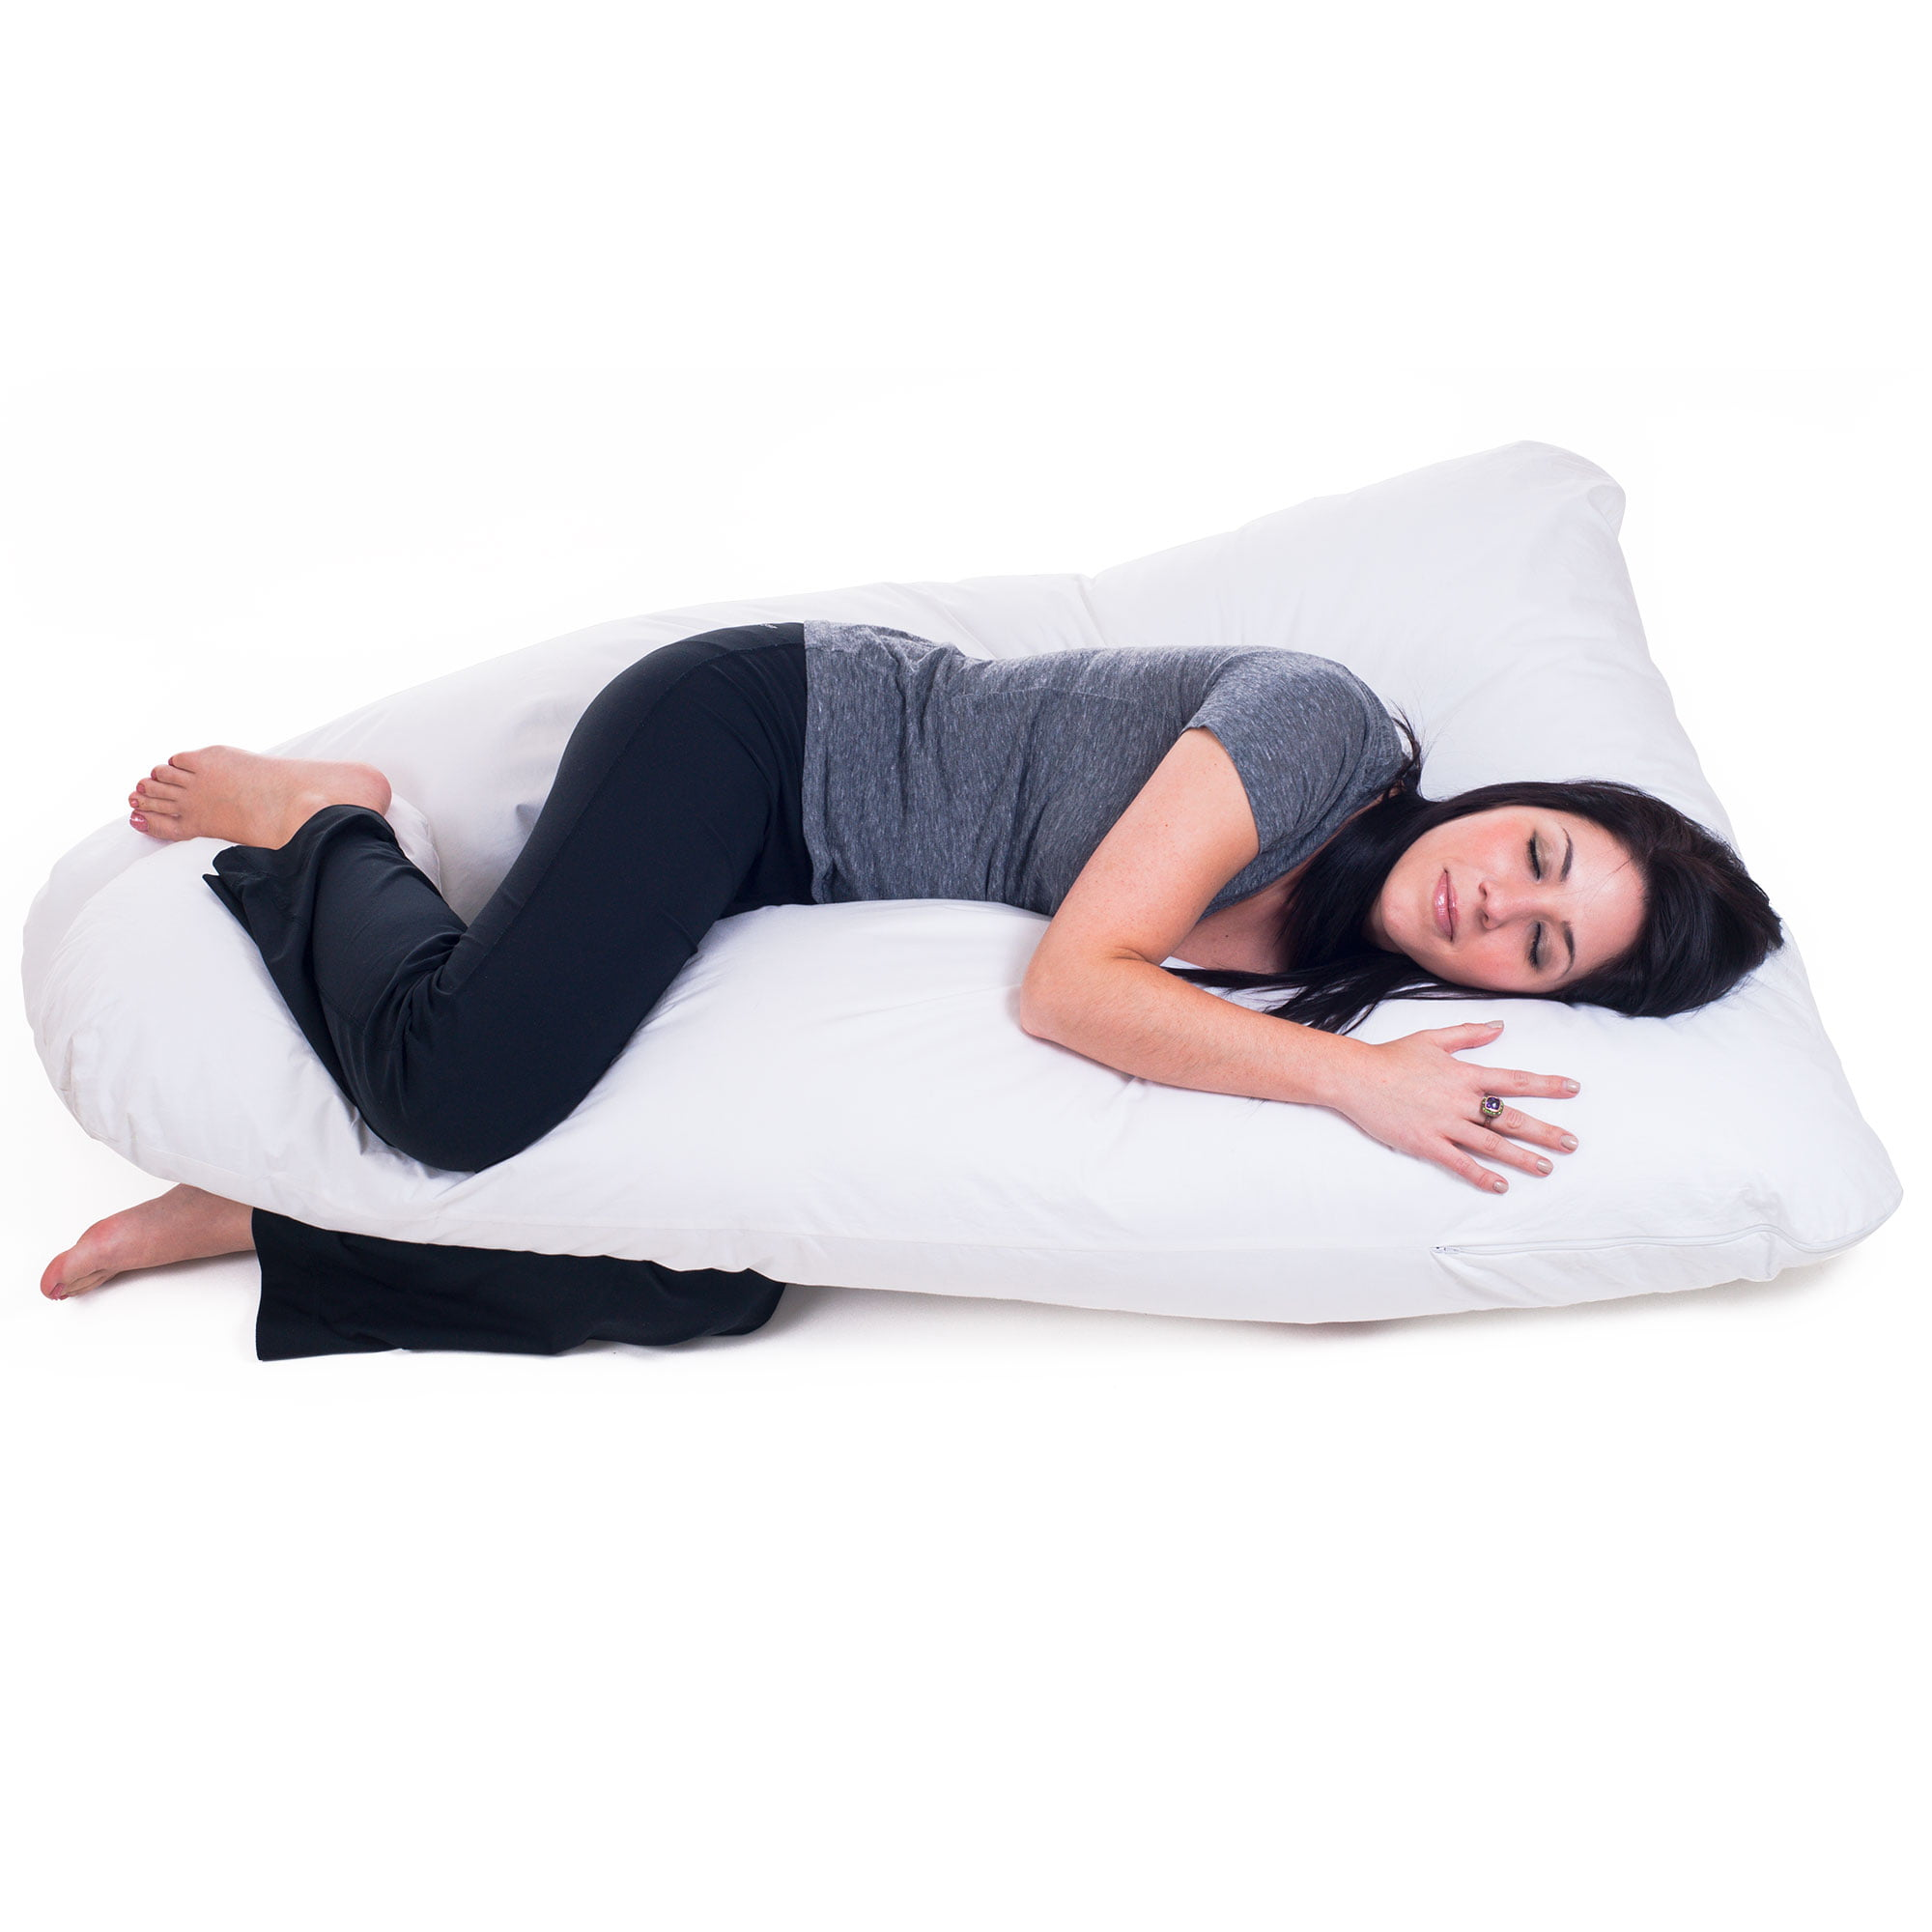 U-Shape Full Body Maternity Pillow with Velvet Cover ThinLife Pregnancy Pillow 55Inch Blue Pink Support Detachable Extension